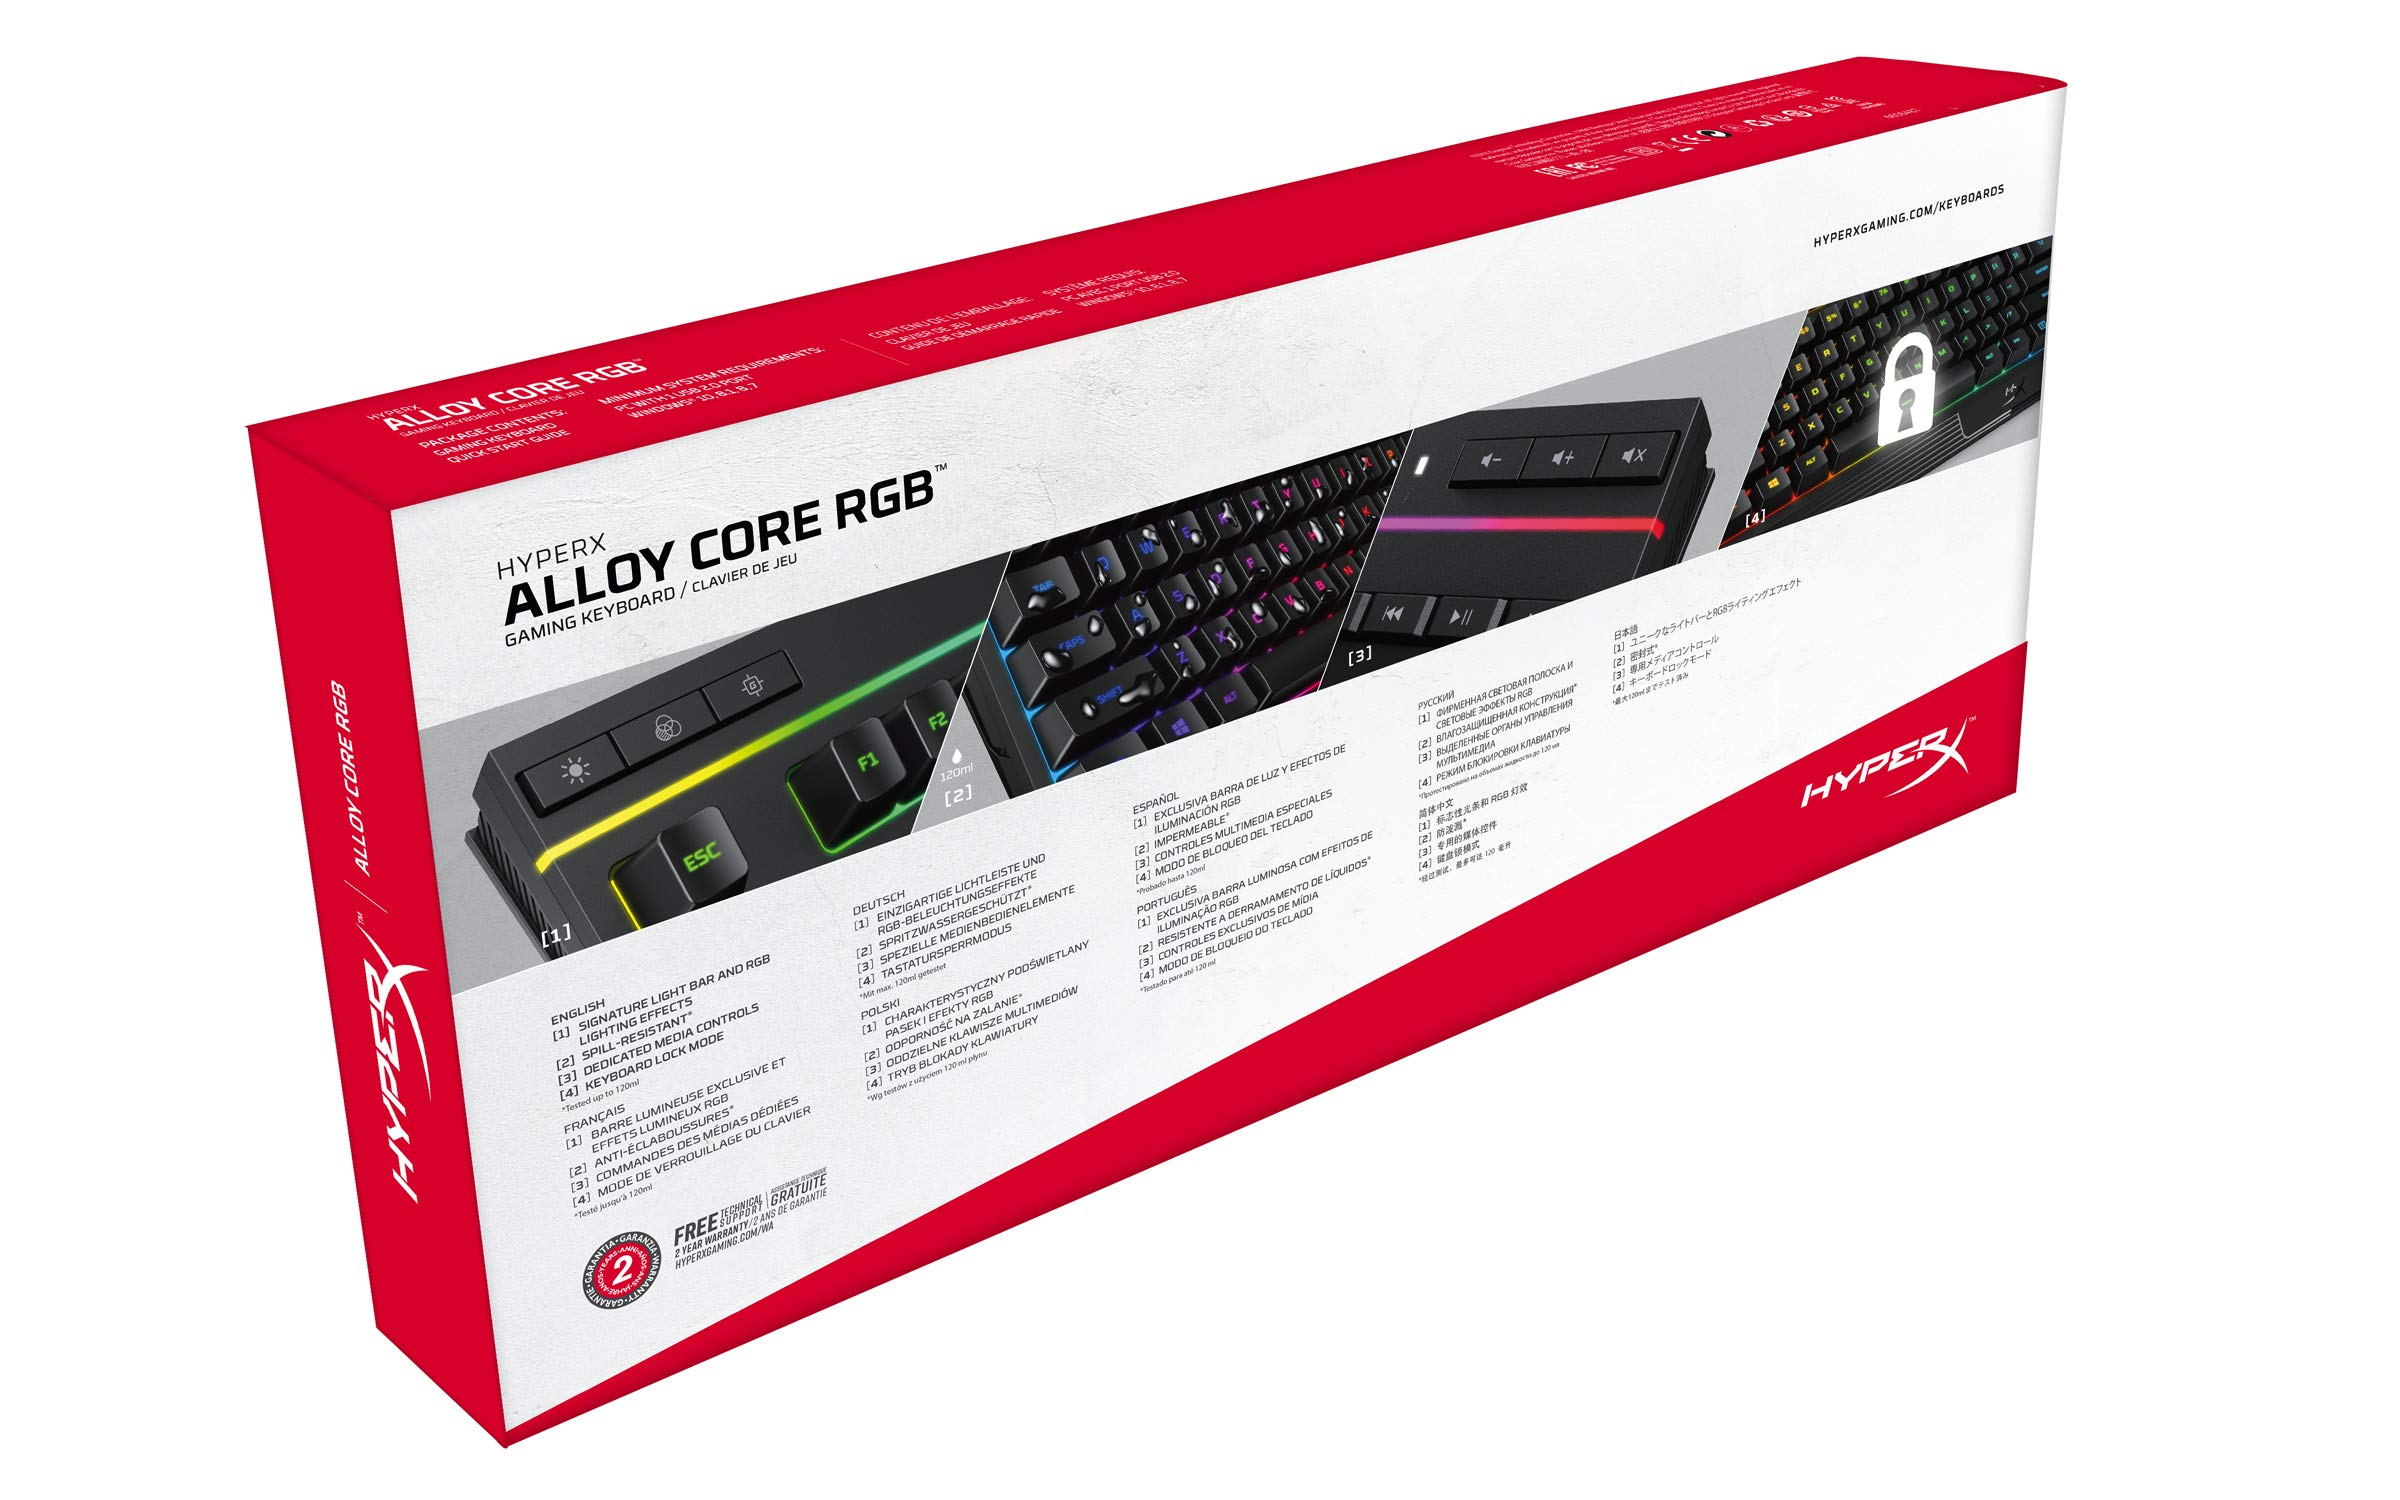 HyperX Alloy Core RGB – Membrane Gaming Keyboard – Comfortable Quiet Silent Keys with RGB LED Lighting Effects, Spill Resistant, Dedicated Media Keys, Compatible with Windows 10/8.1/8/7 – Black by HyperX (Image #6)